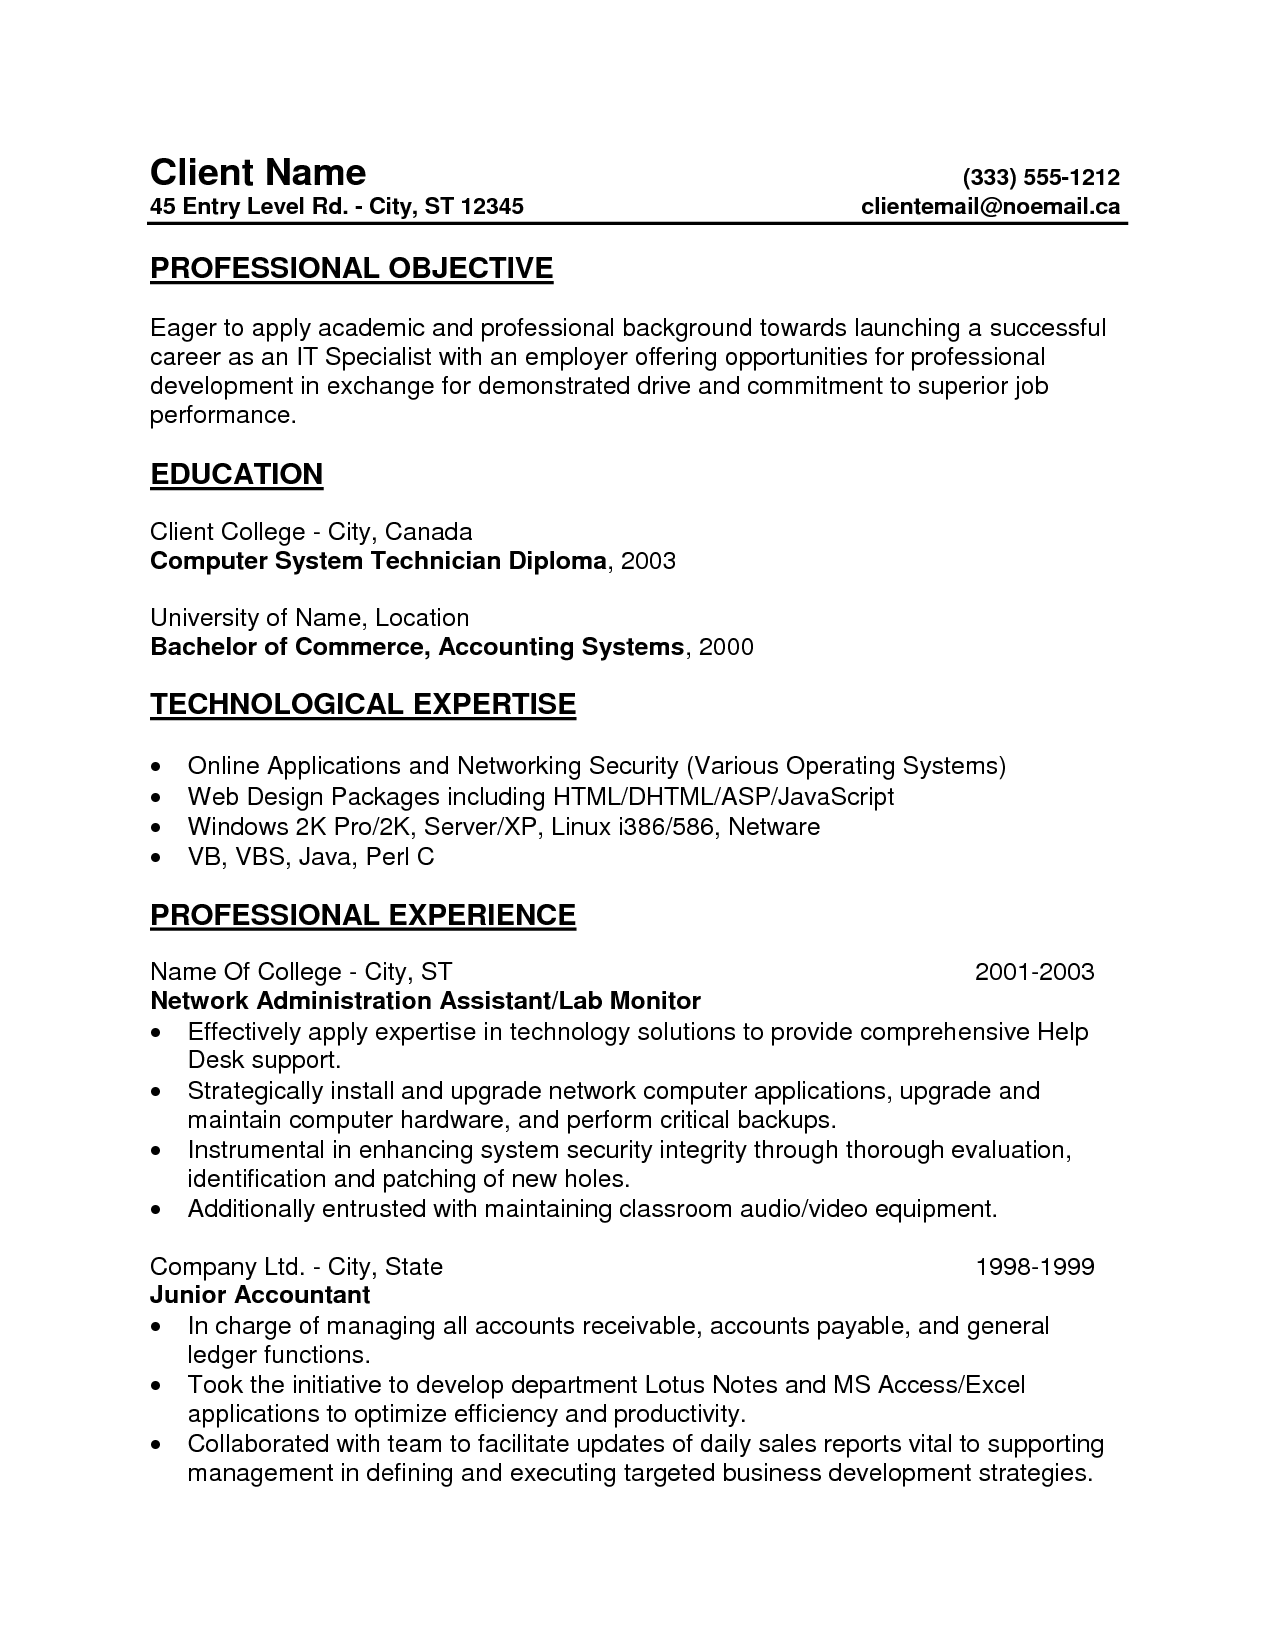 Great Entry Level Resume Professional Objective And Professional Experience